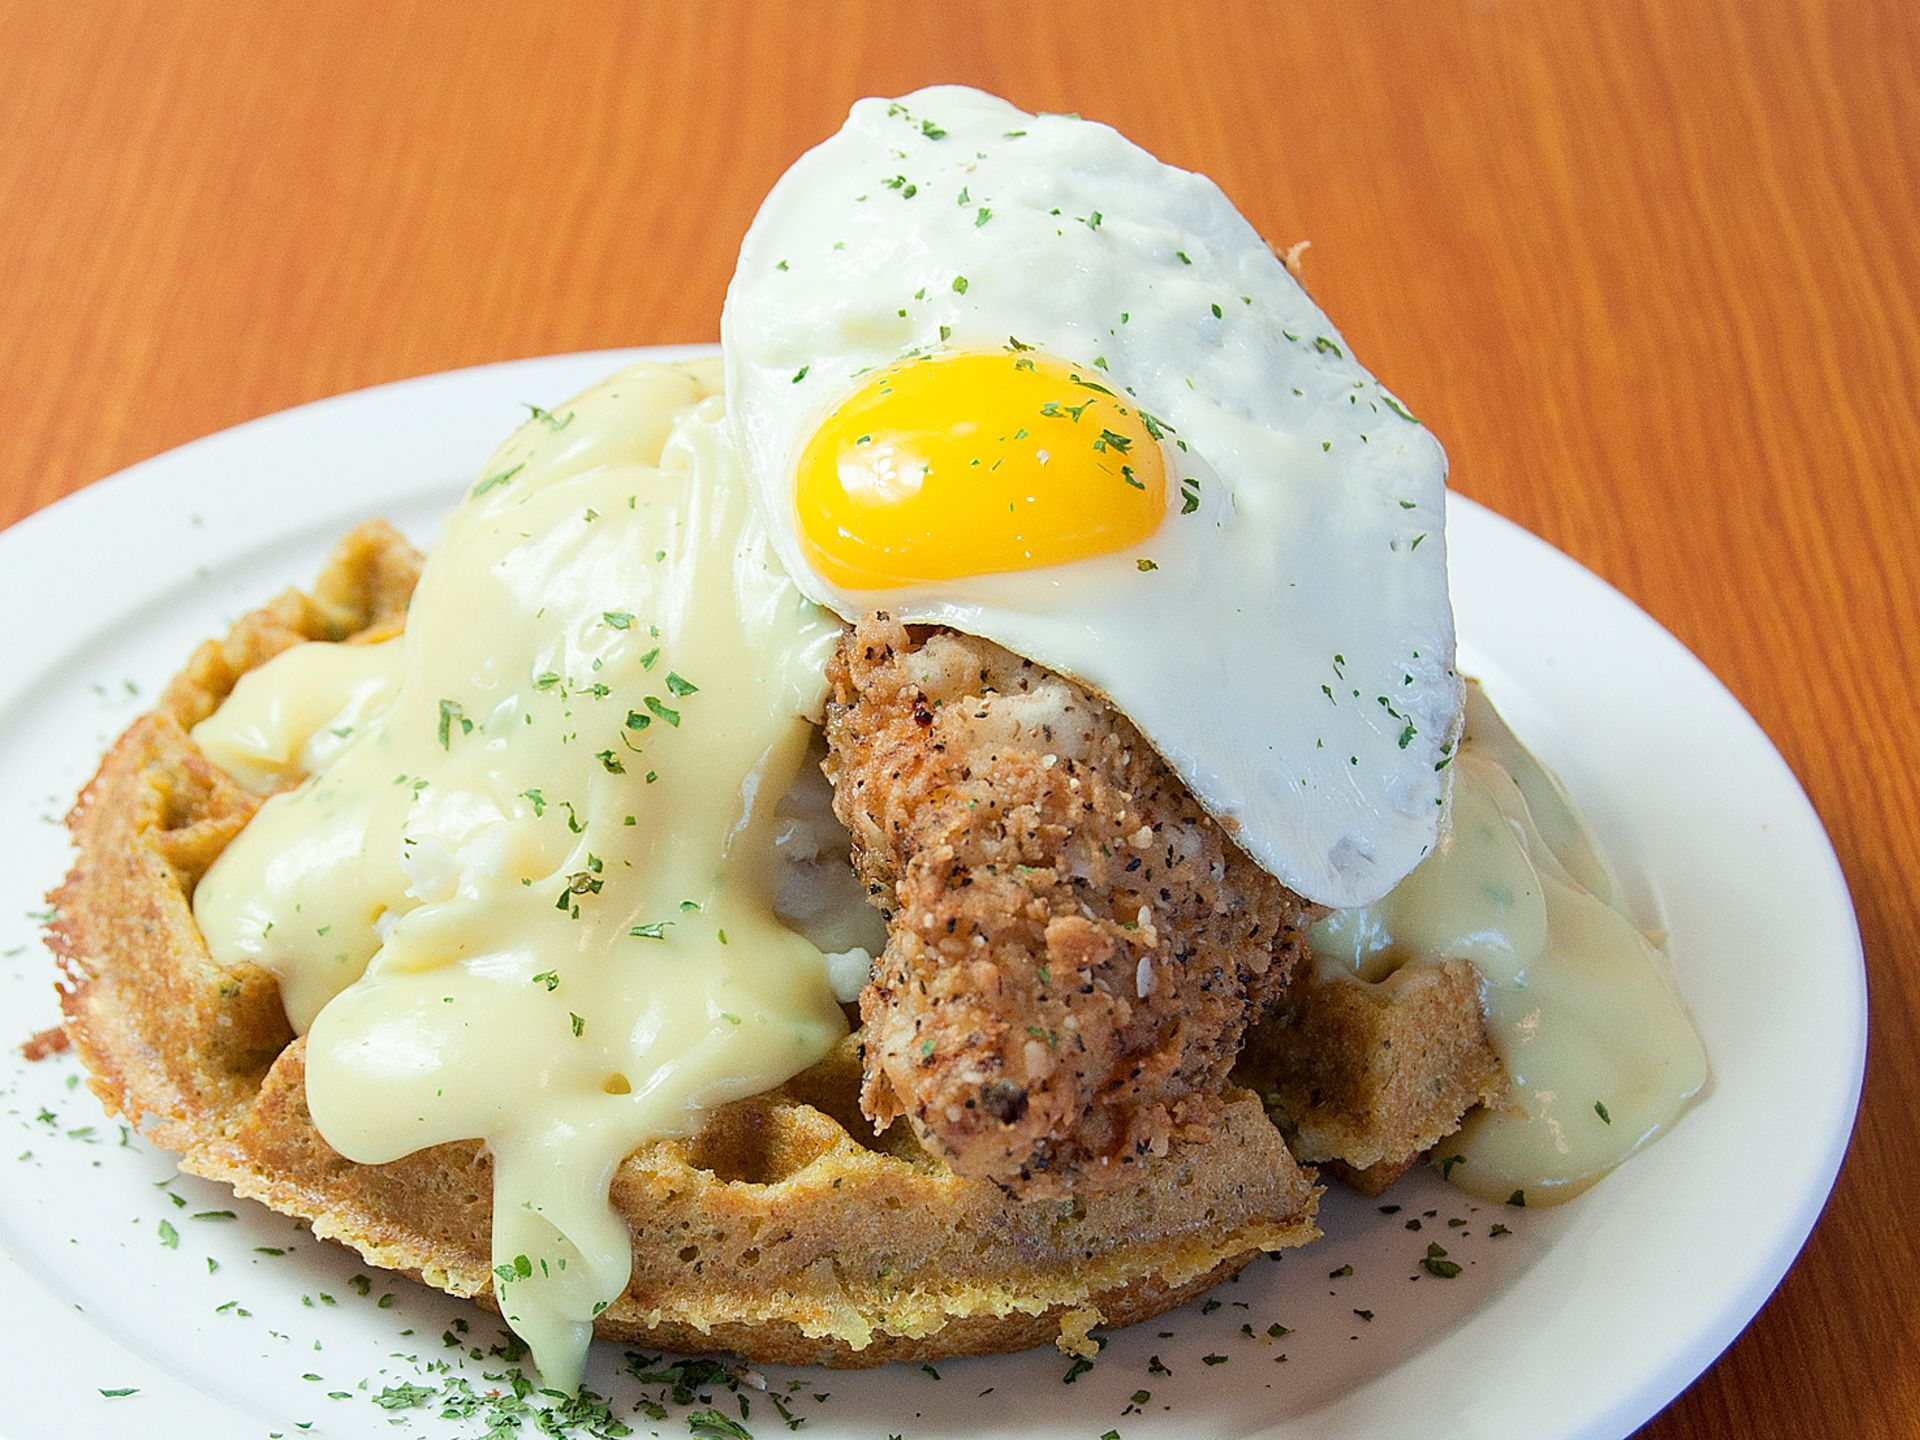 Chicken and waffles with a fried egg and gravy